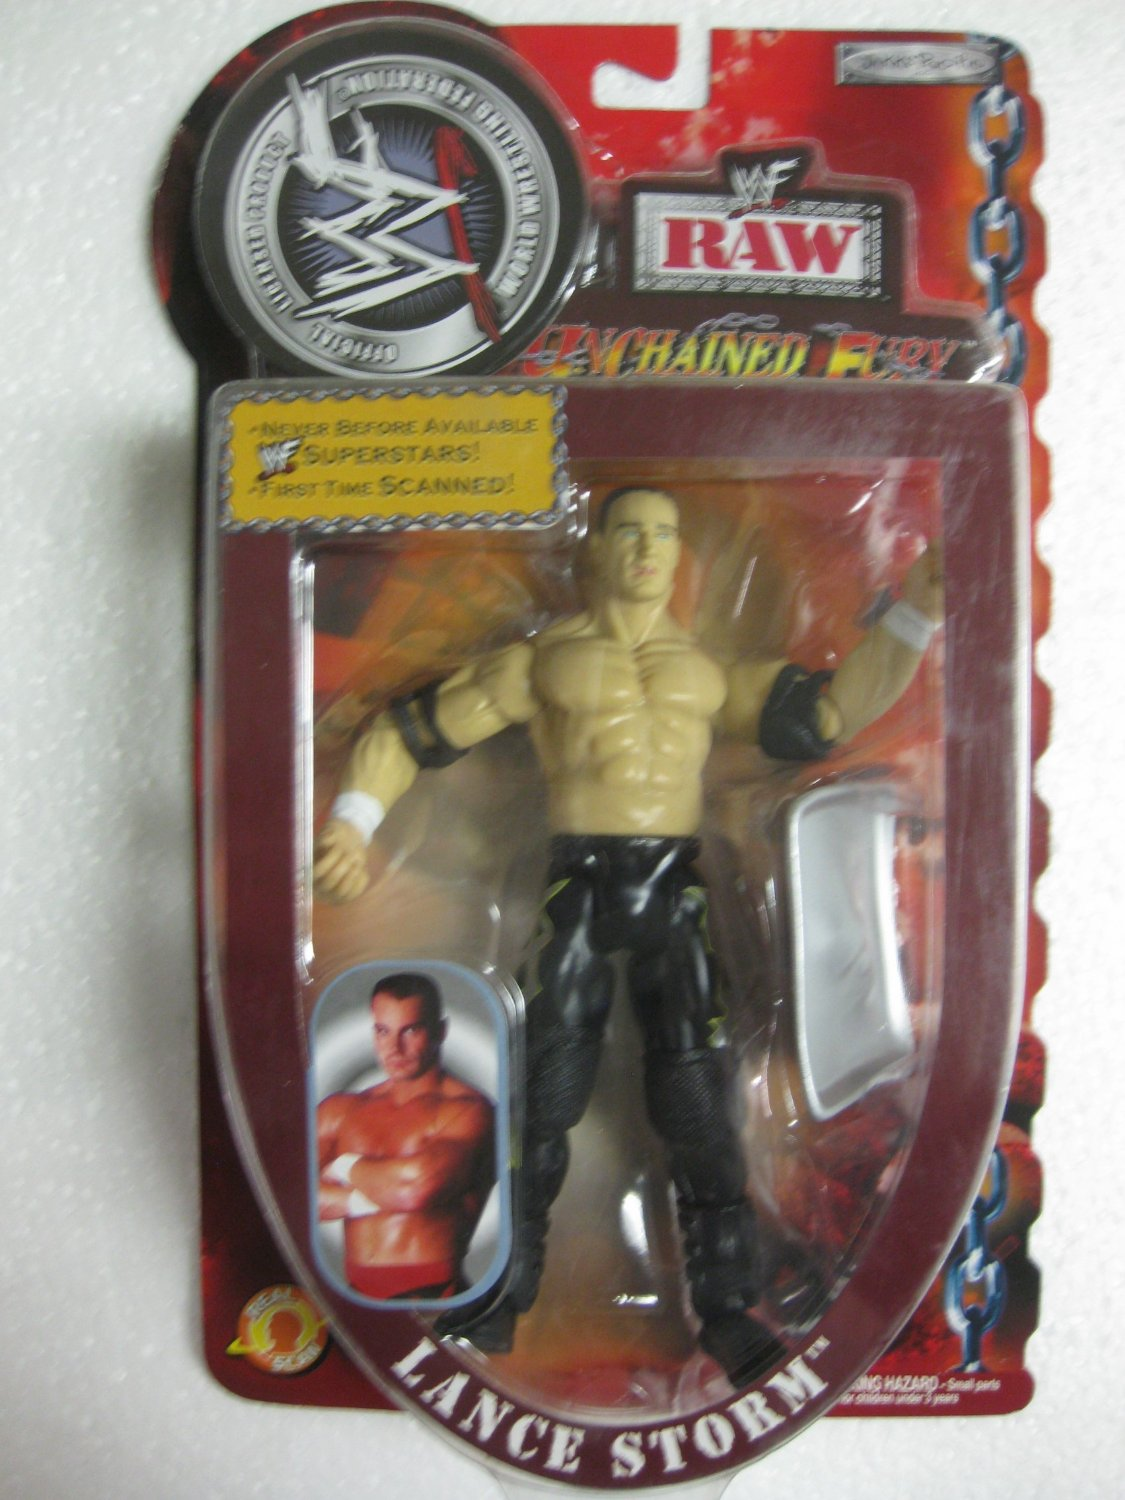 Series 1 RAW Booker T WWF//WWE UNCHAINED FURY